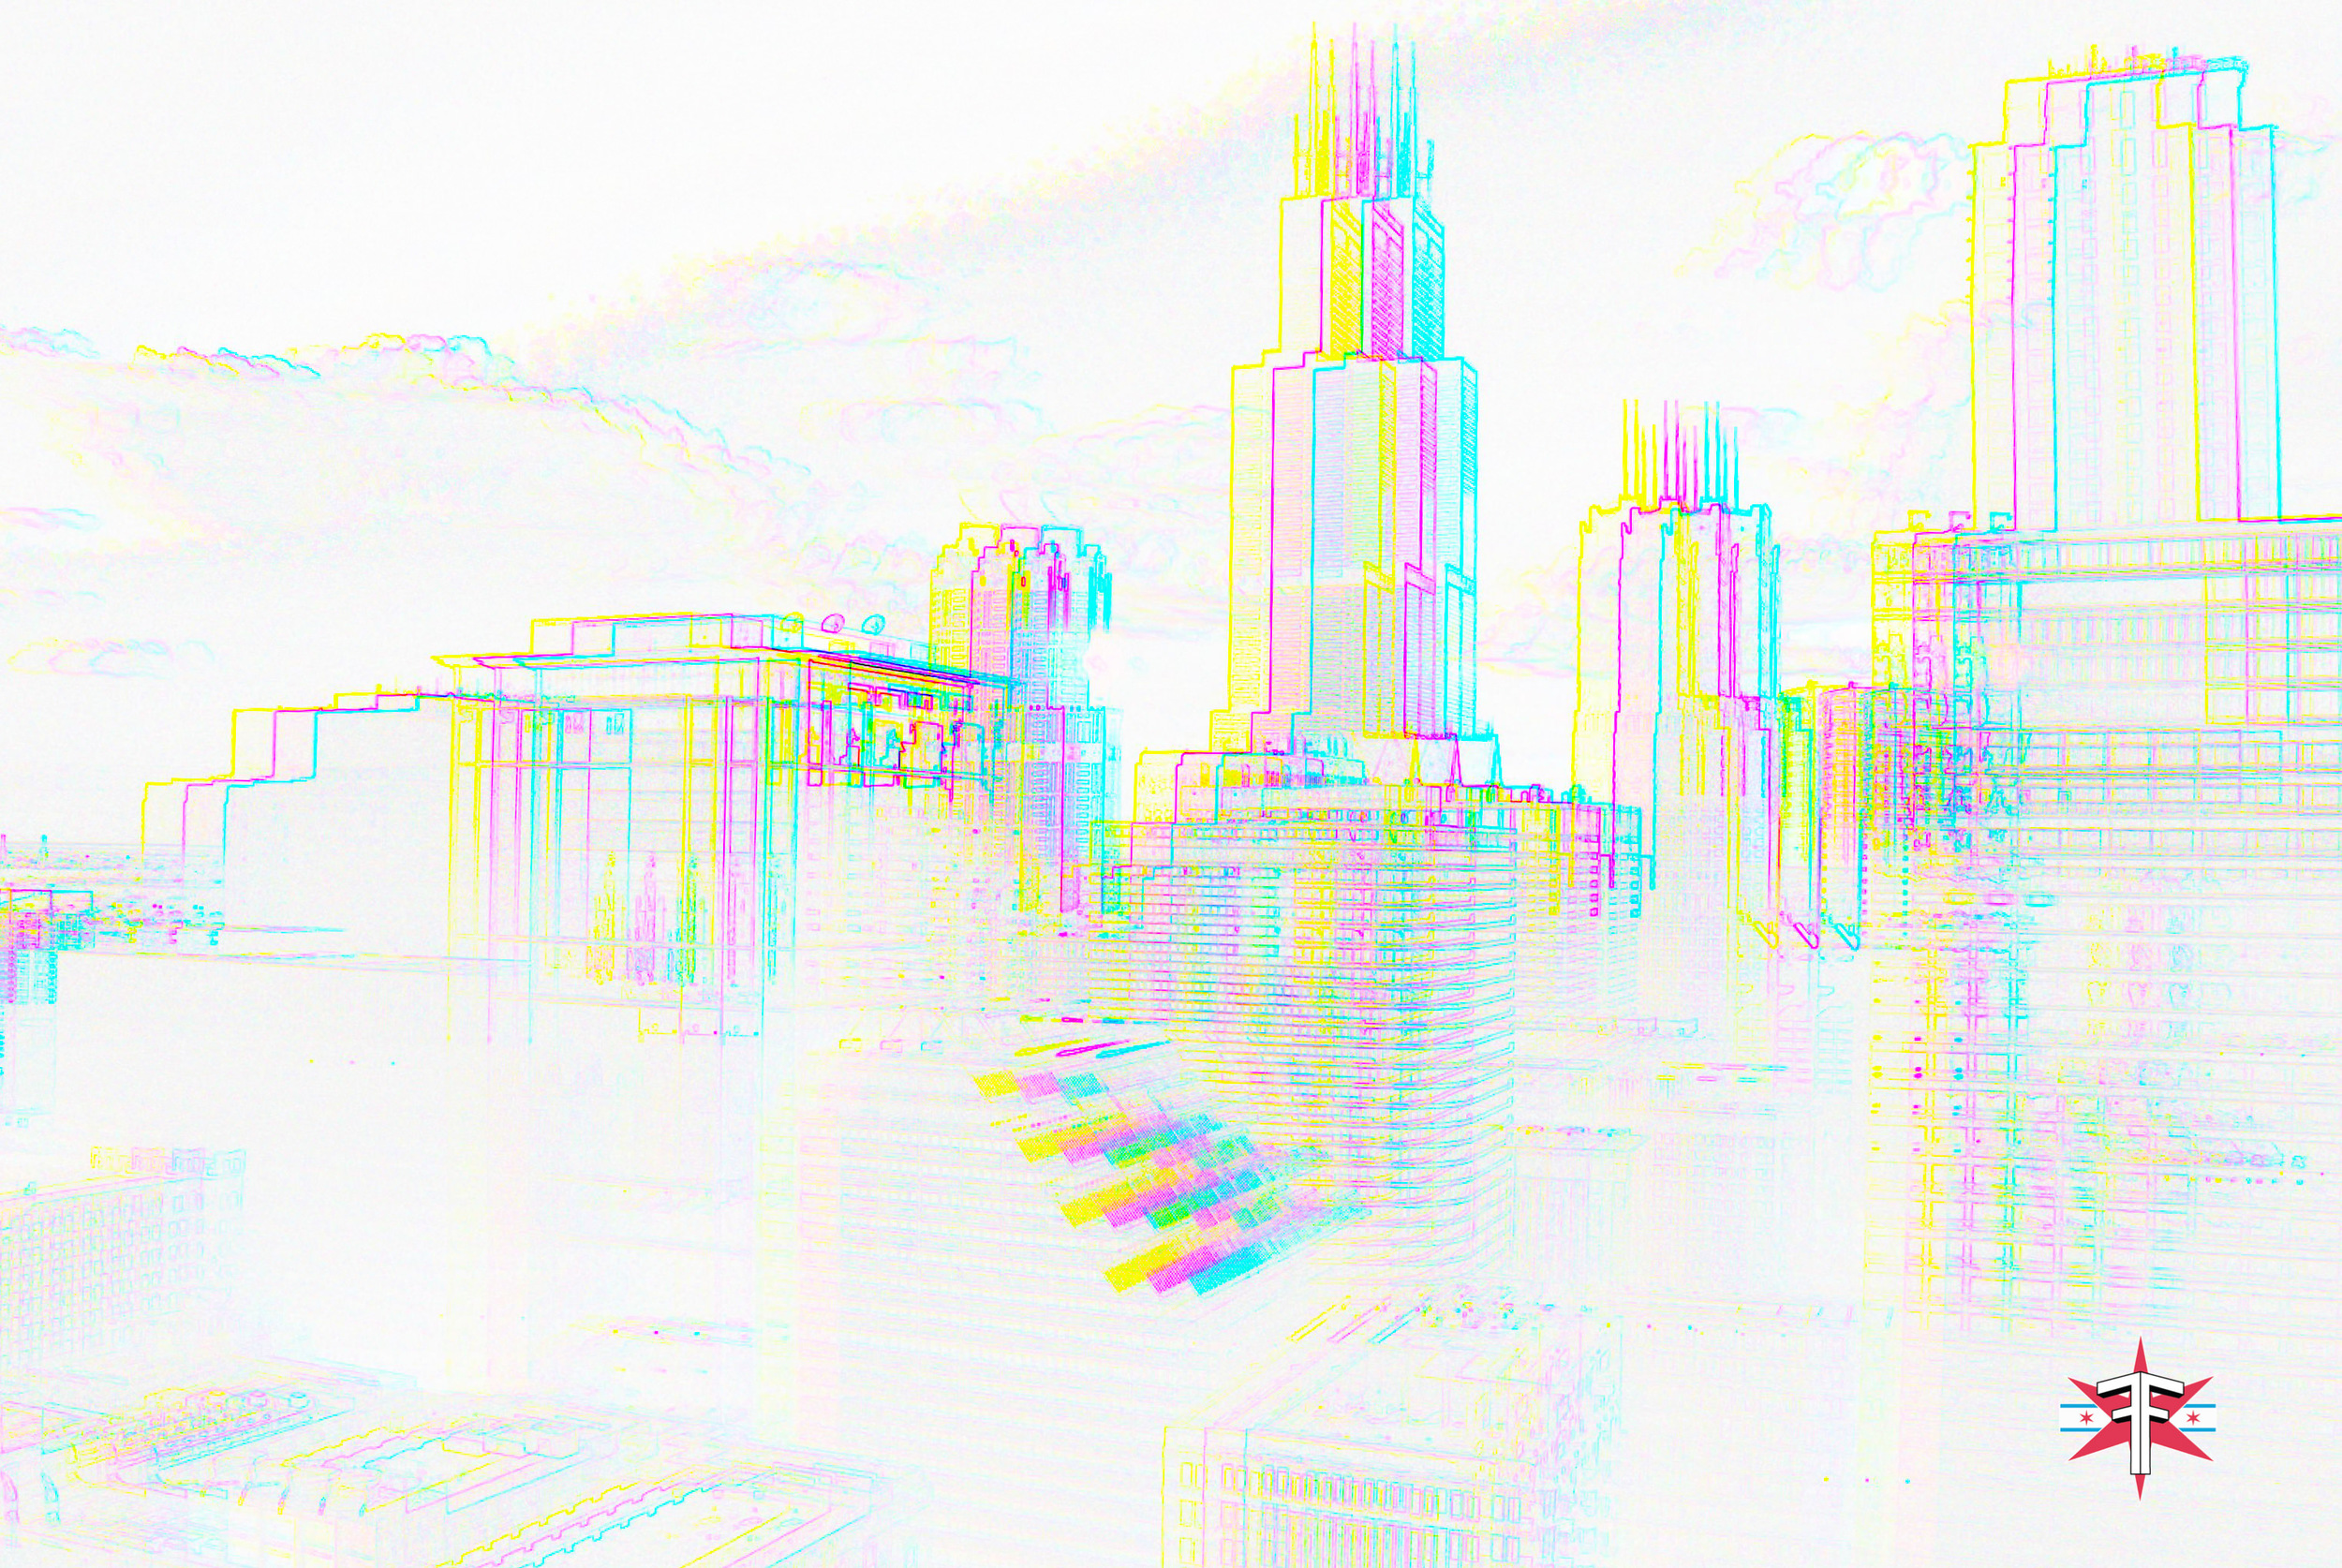 chicago downtown loop sears tower hancock buildings towers trippy vibrant colors abstract skyline cityscape eric formato formatografia fotografia arte photography color photography fine art design-8.jpg